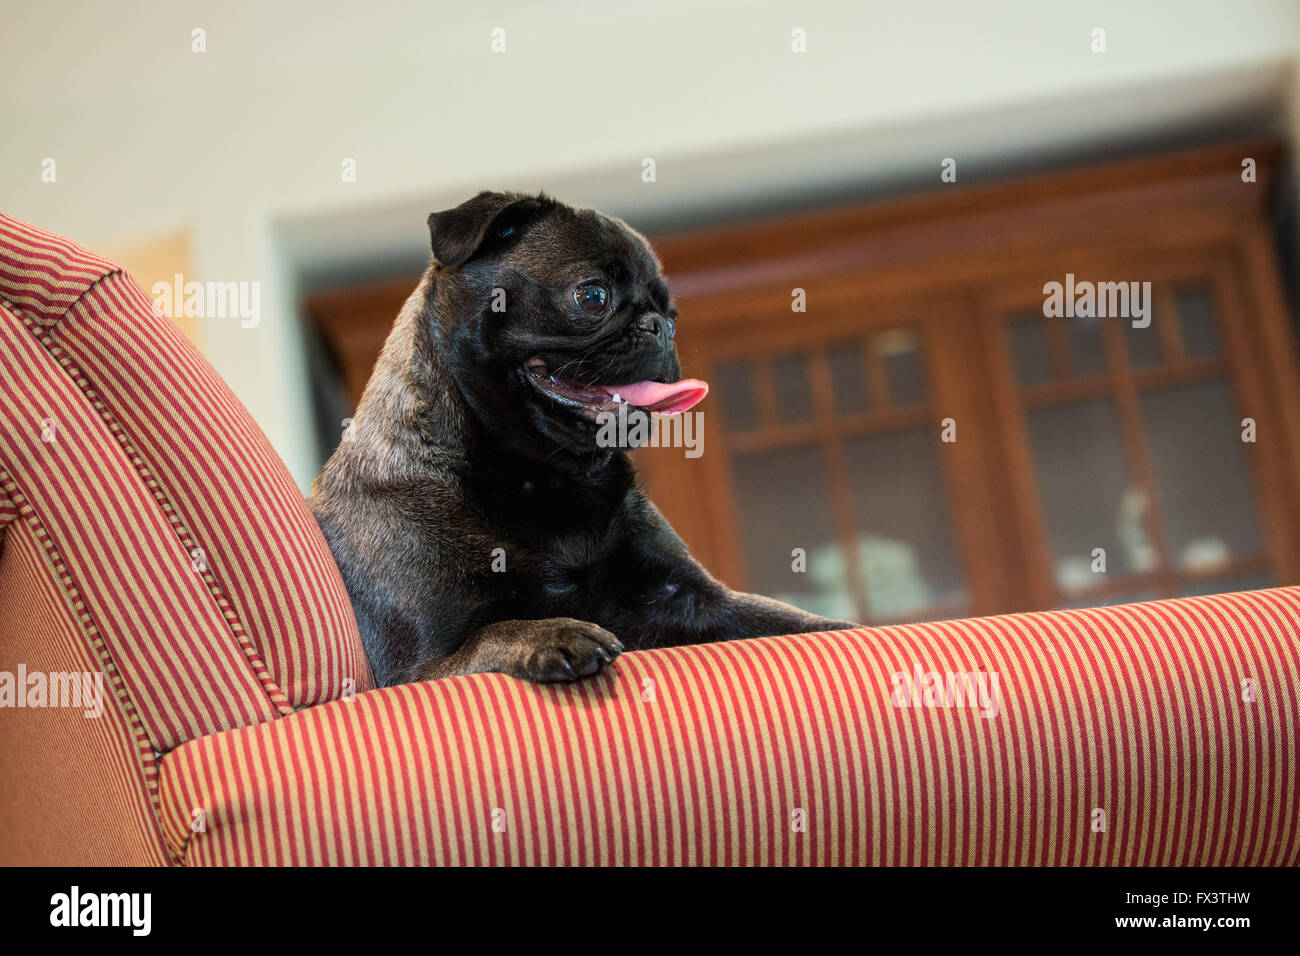 Olive, the Pug, sitting in an upholstered chair in Issaquah, Washington, USA - Stock Image